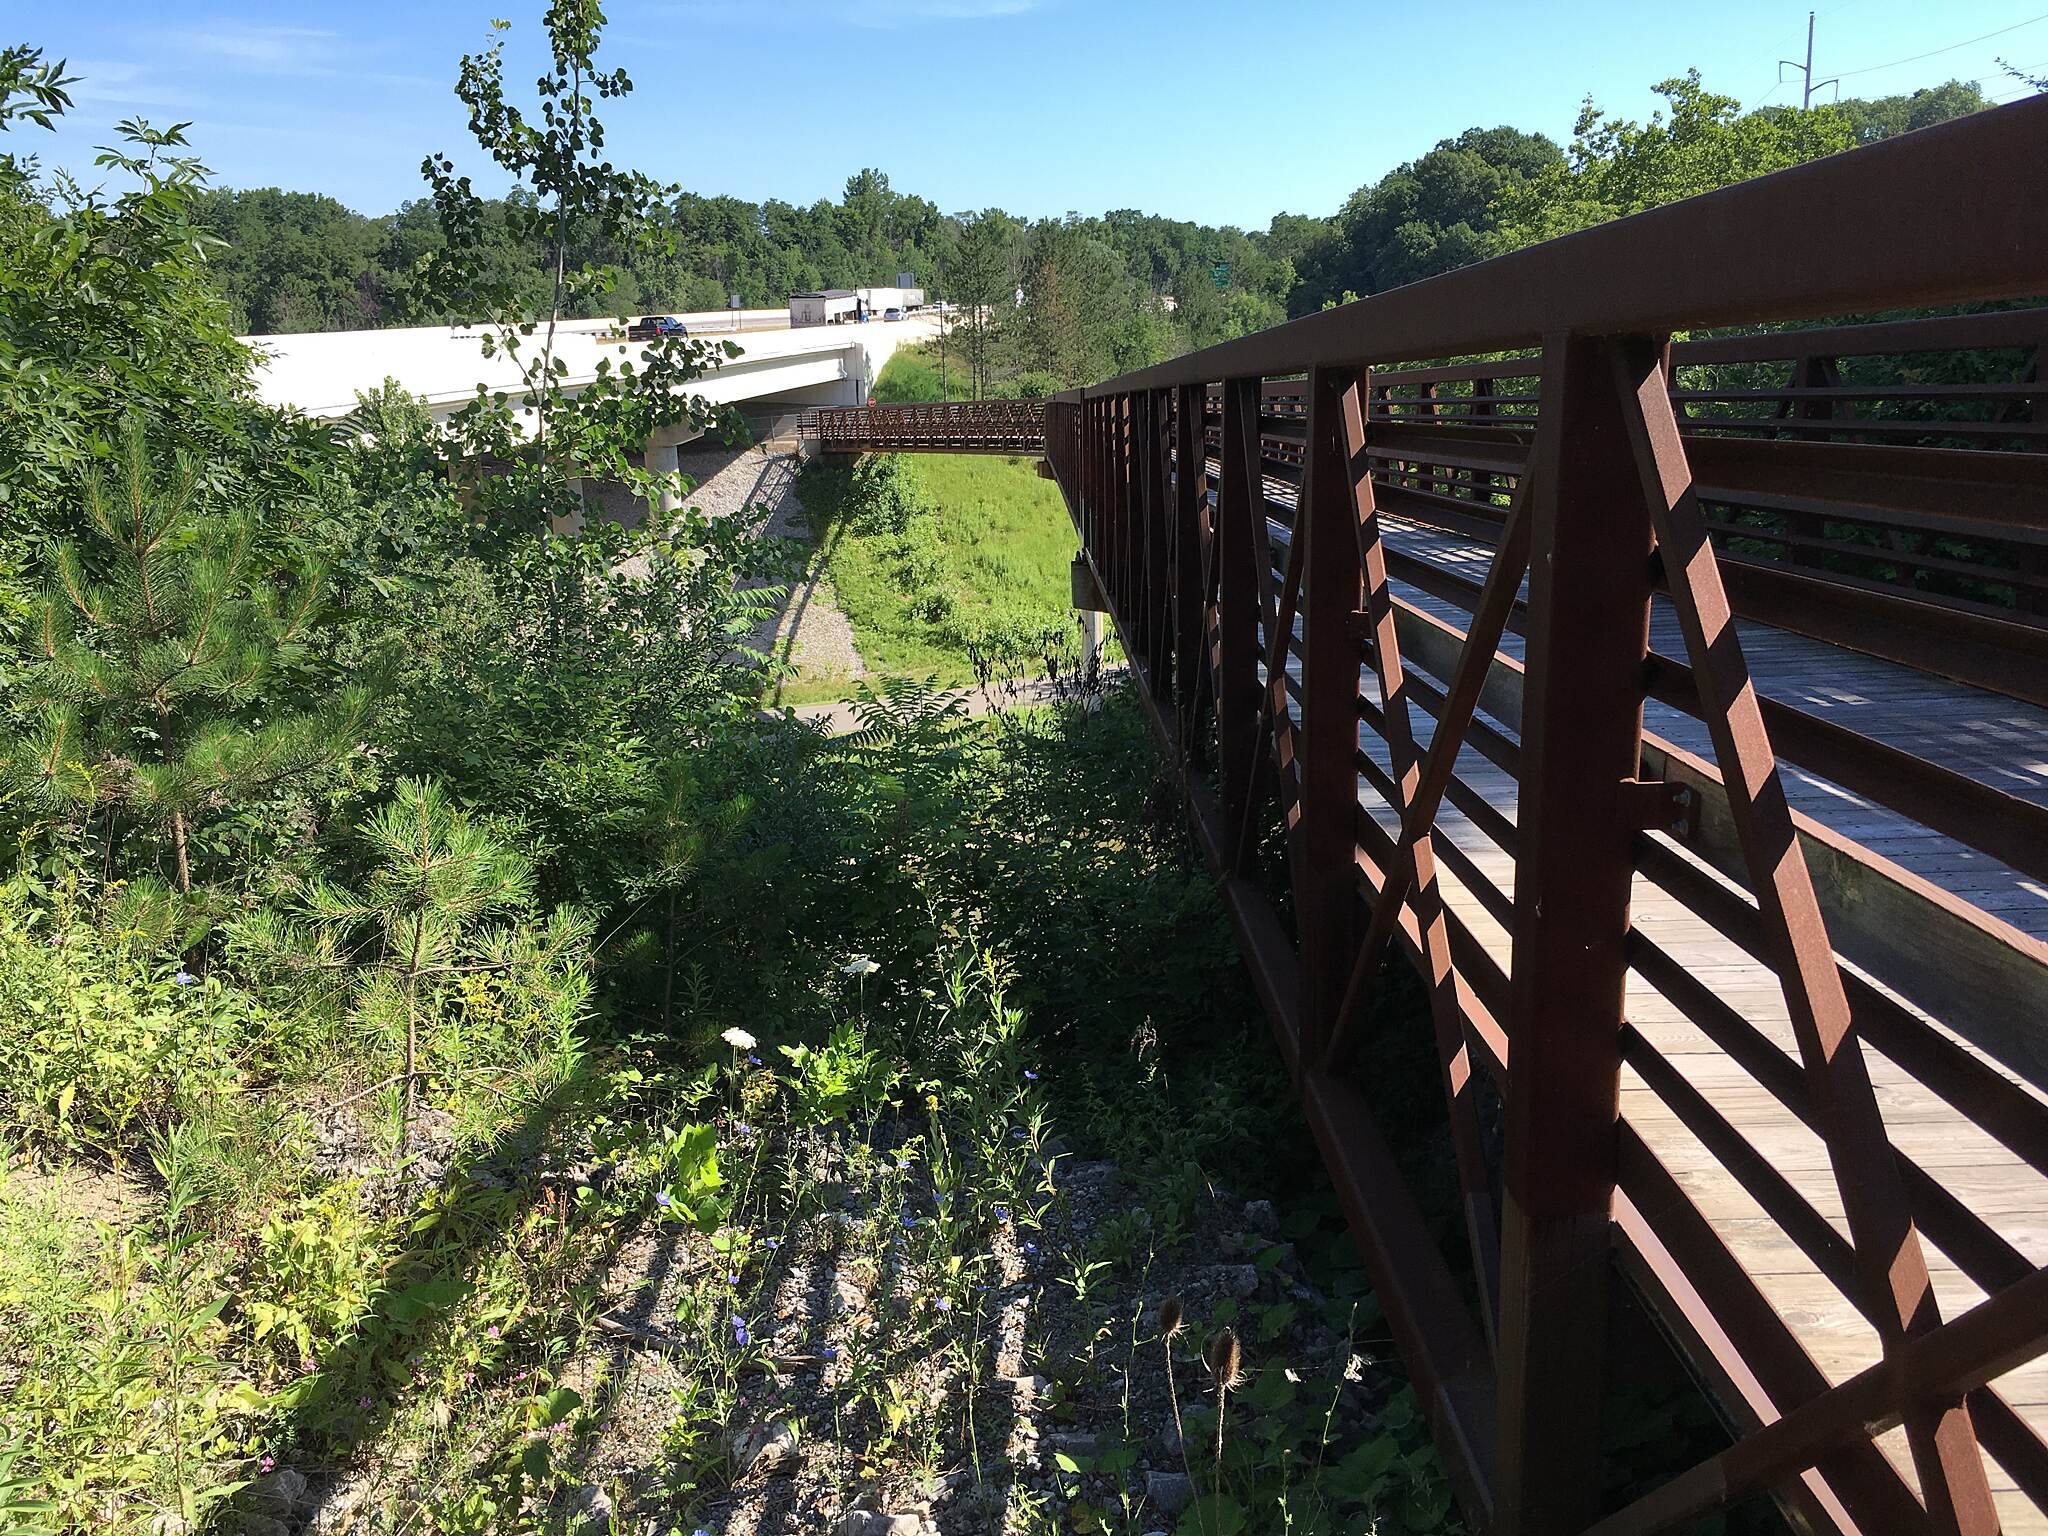 Bridgeway Trail July 19, 2018